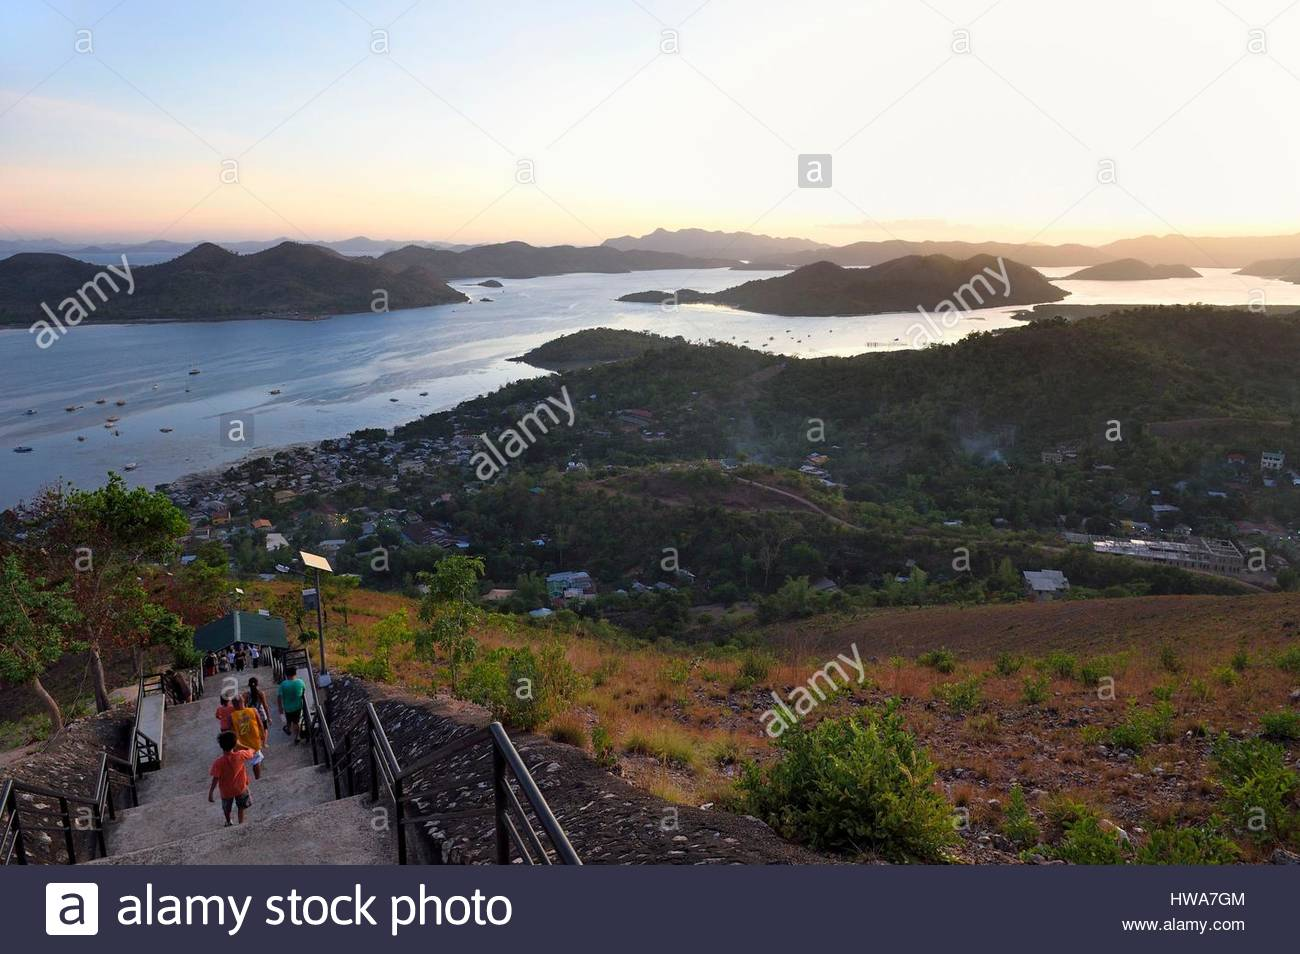 Mt Tapyas Coron Town, Philippines, Calamian Islands in northern Palawan, Coron Island ...